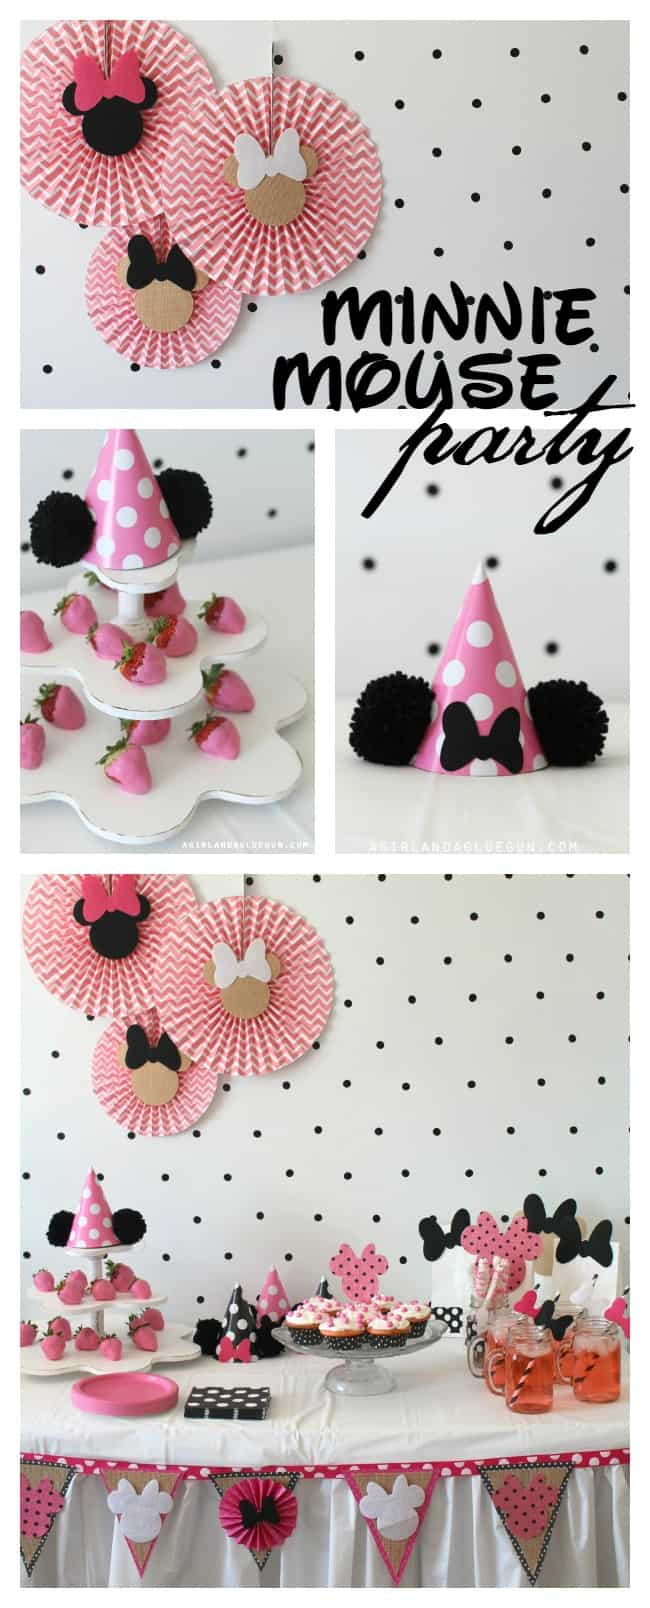 minnie-mouse-party-polka-dot-a-girl-and-a-glue-gun